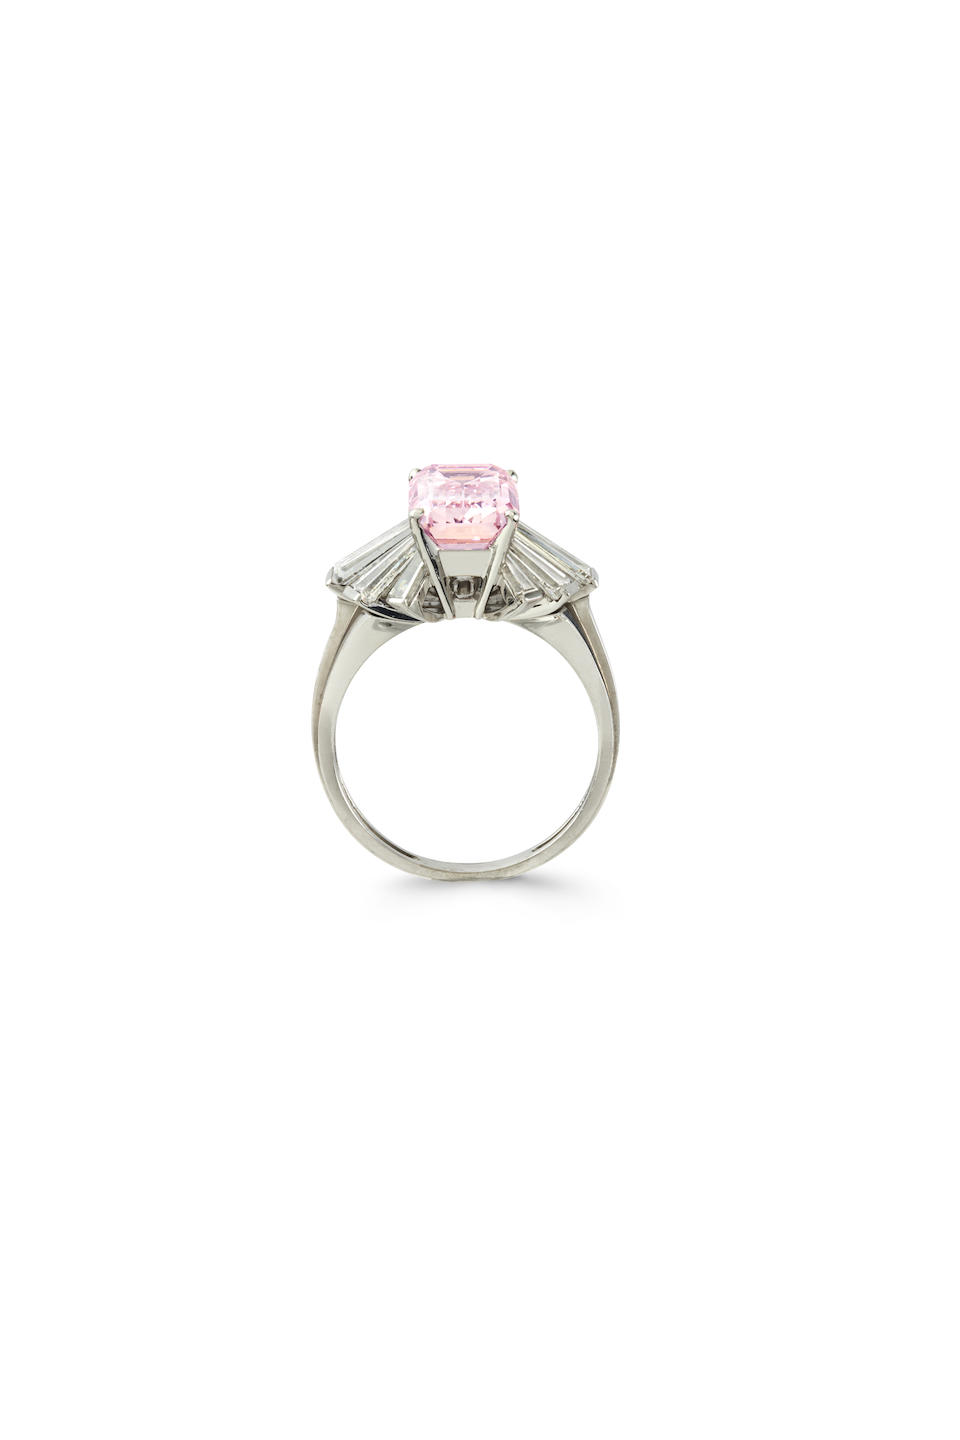 AN IMPORTANT FANCY PINK DIAMOND AND DIAMOND RING, BY MEISTER,